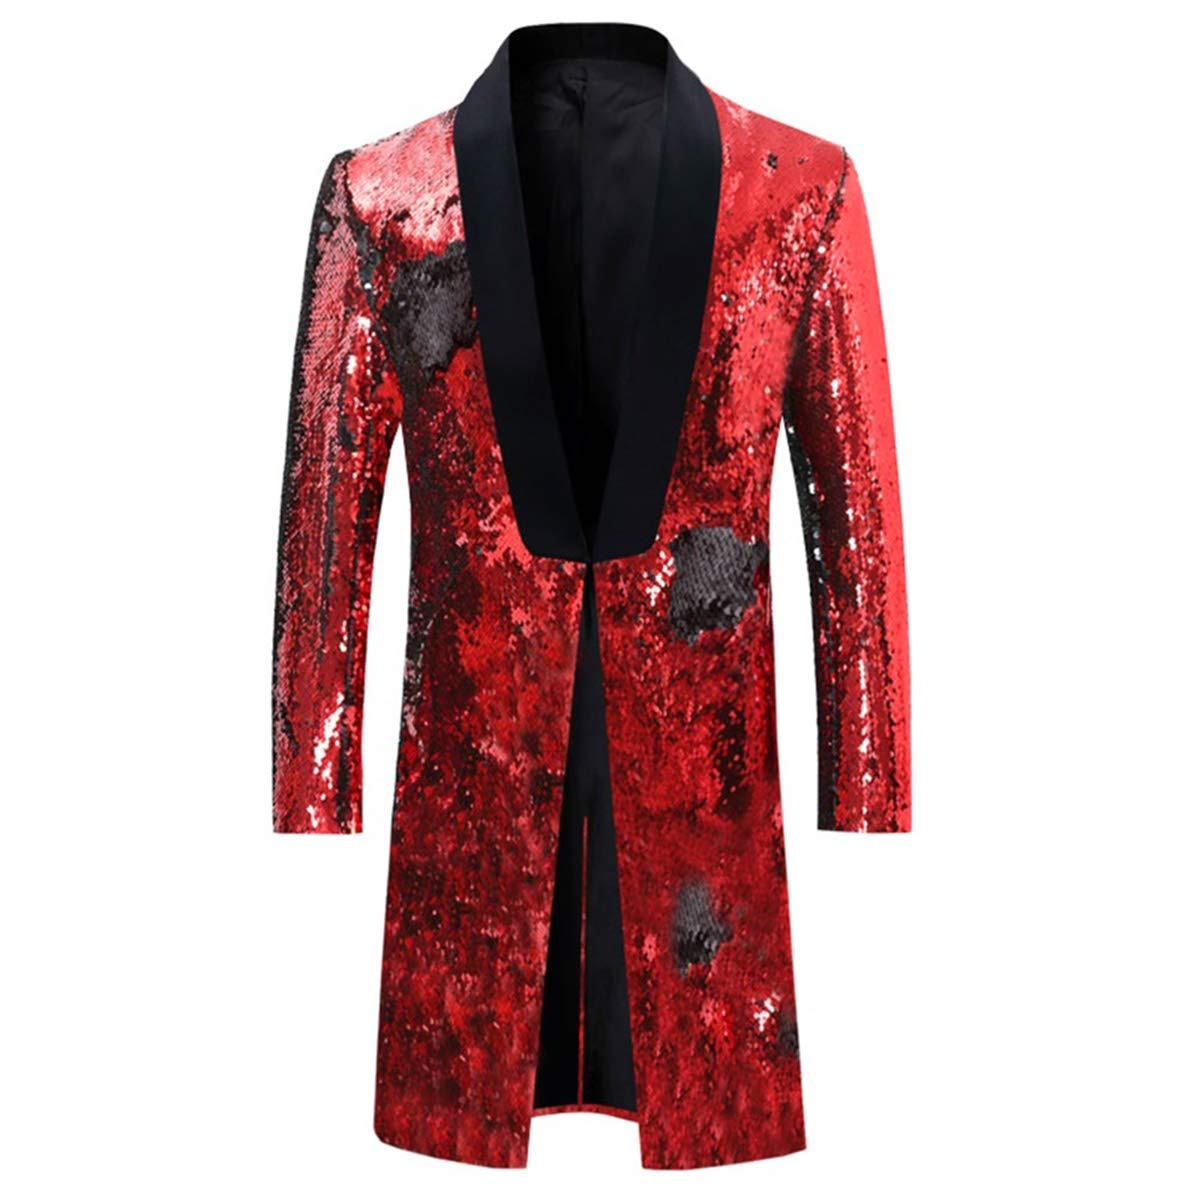 Men's Slim Fit Suit Jacket Shiny Sequin Party Wedding Performance Blazer Black - Red by Cloudstyle